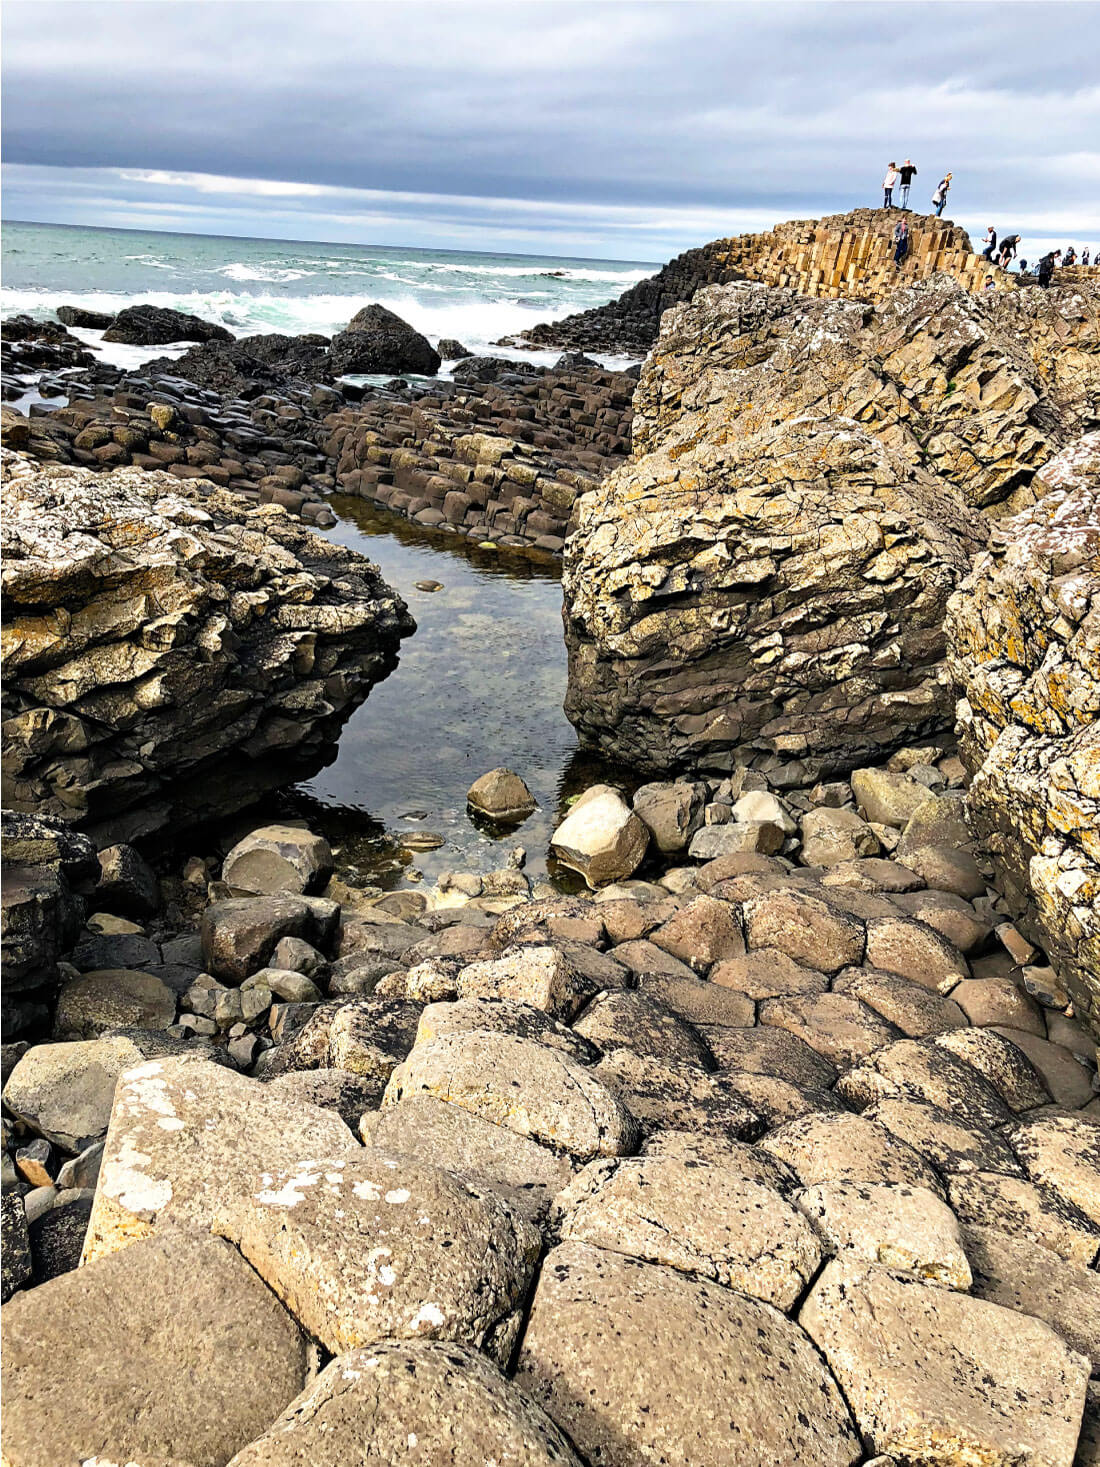 Things to do in Northern Ireland - Giant's Causeway, part of a British Isles Cruise